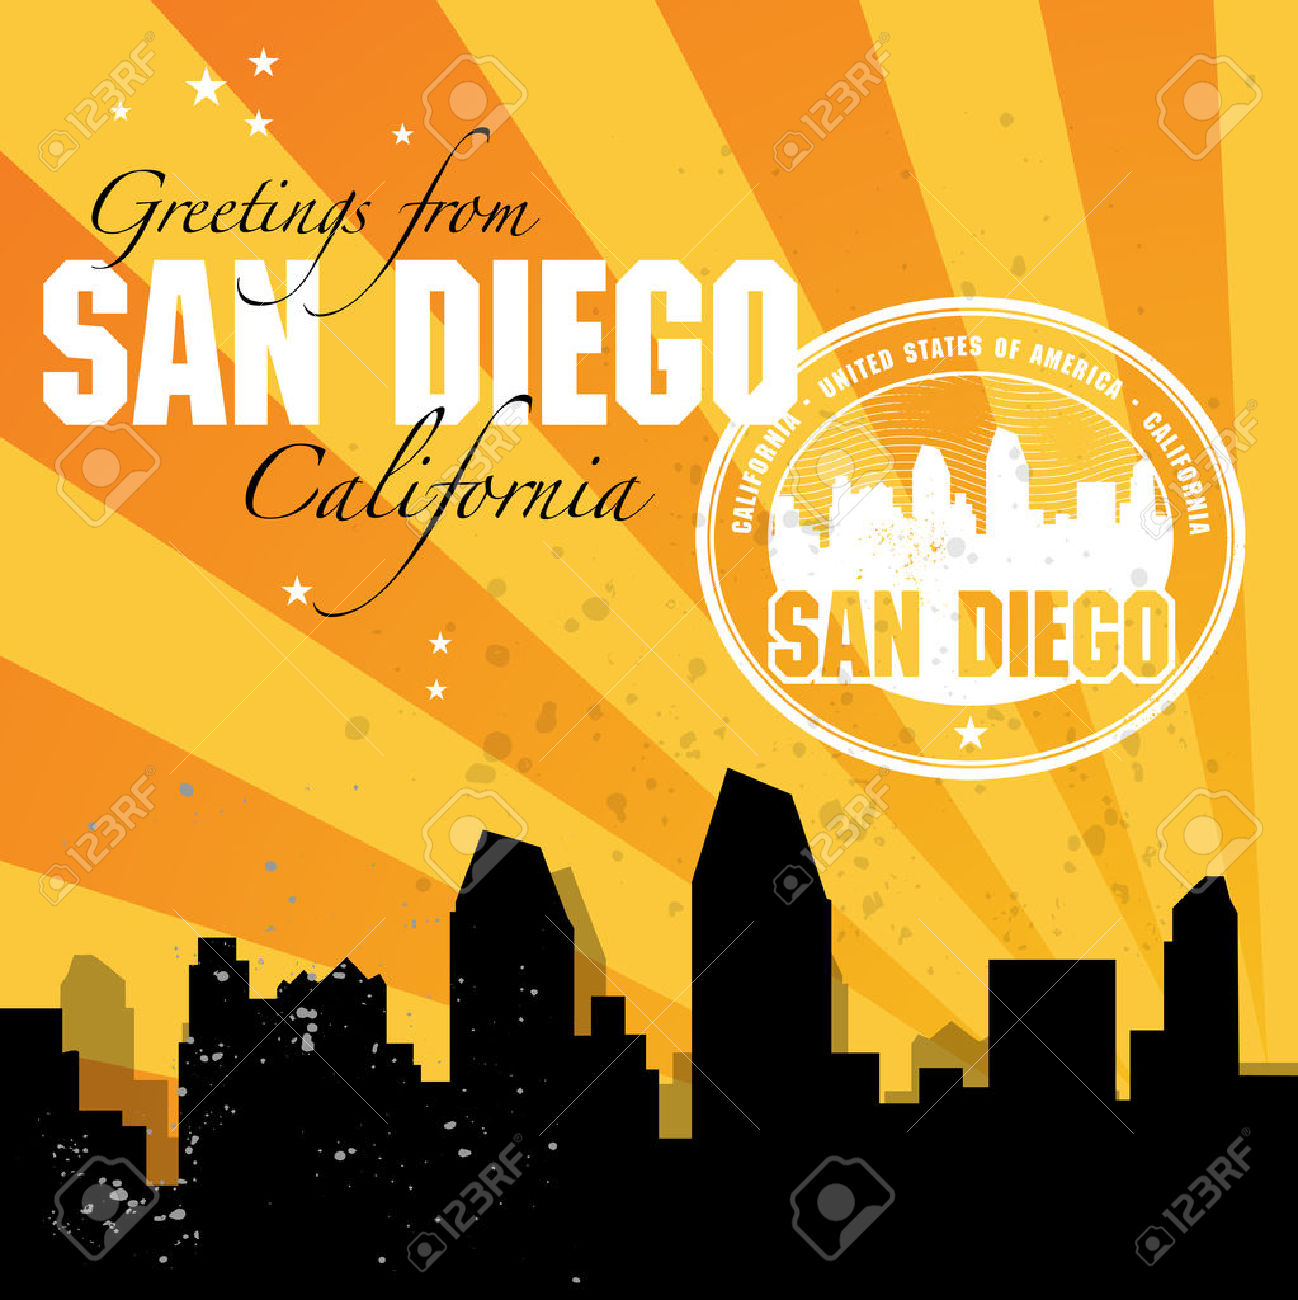 San Diego clipart #17, Download drawings